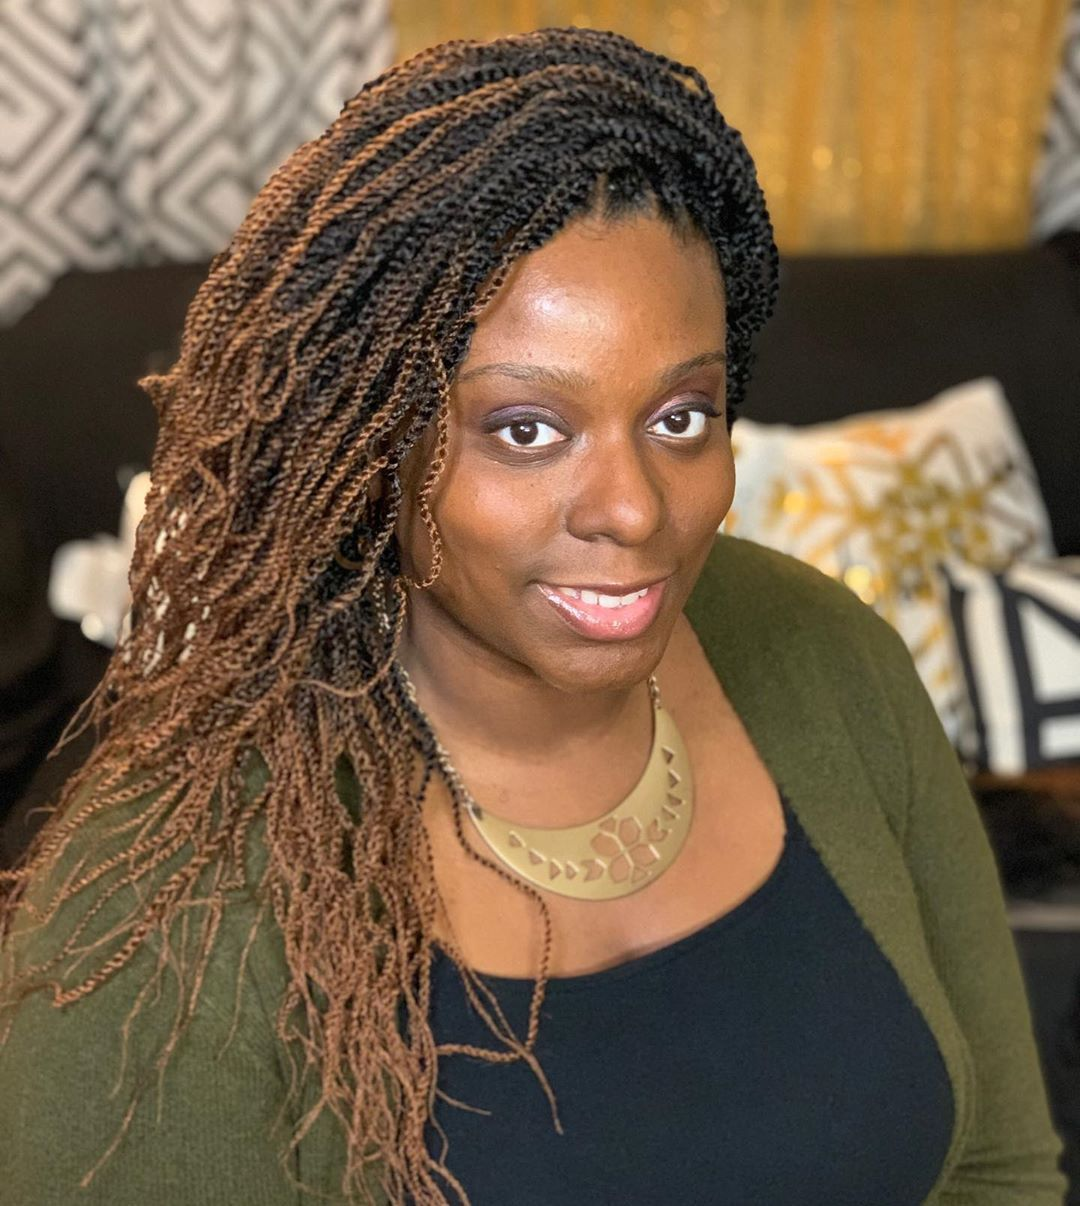 50 most headturning crochet braids hairstyles for 2020